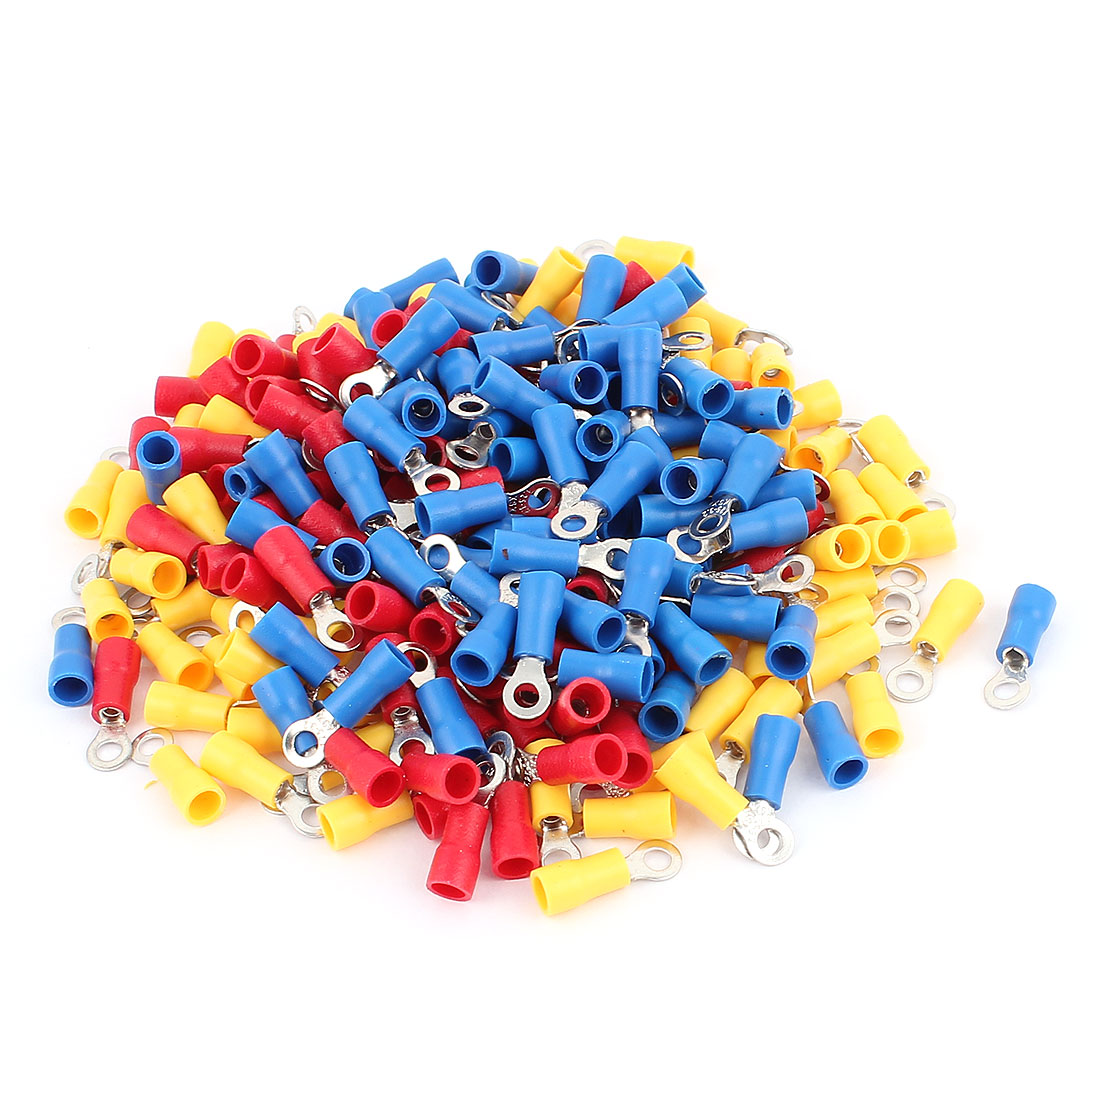 240 Pcs RV1.25-3.2 AWG 22-16 Red Blue Yellow Sleeve Pre Insulated Ring Terminals Connector